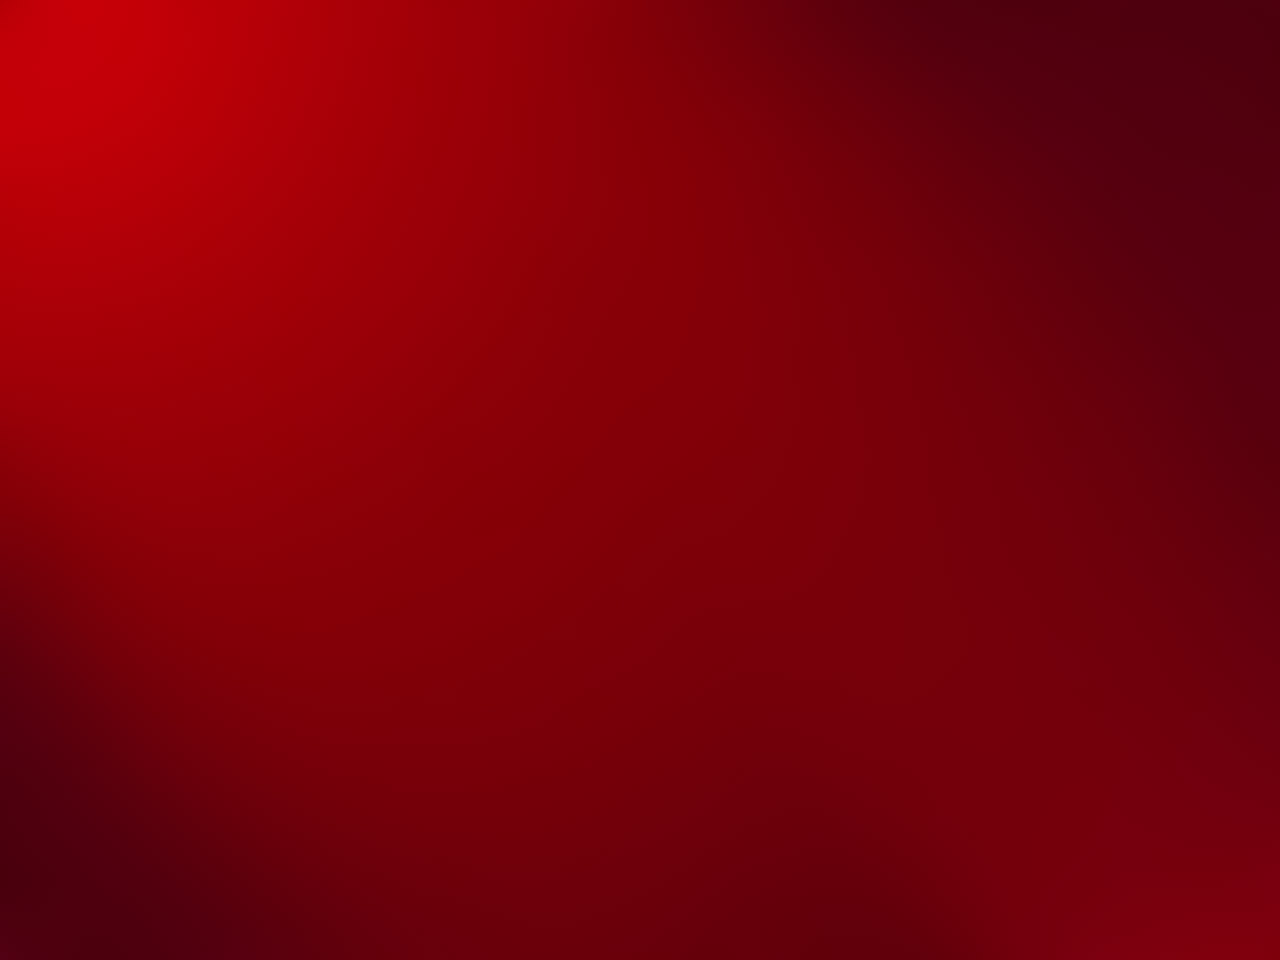 abstract_background_red